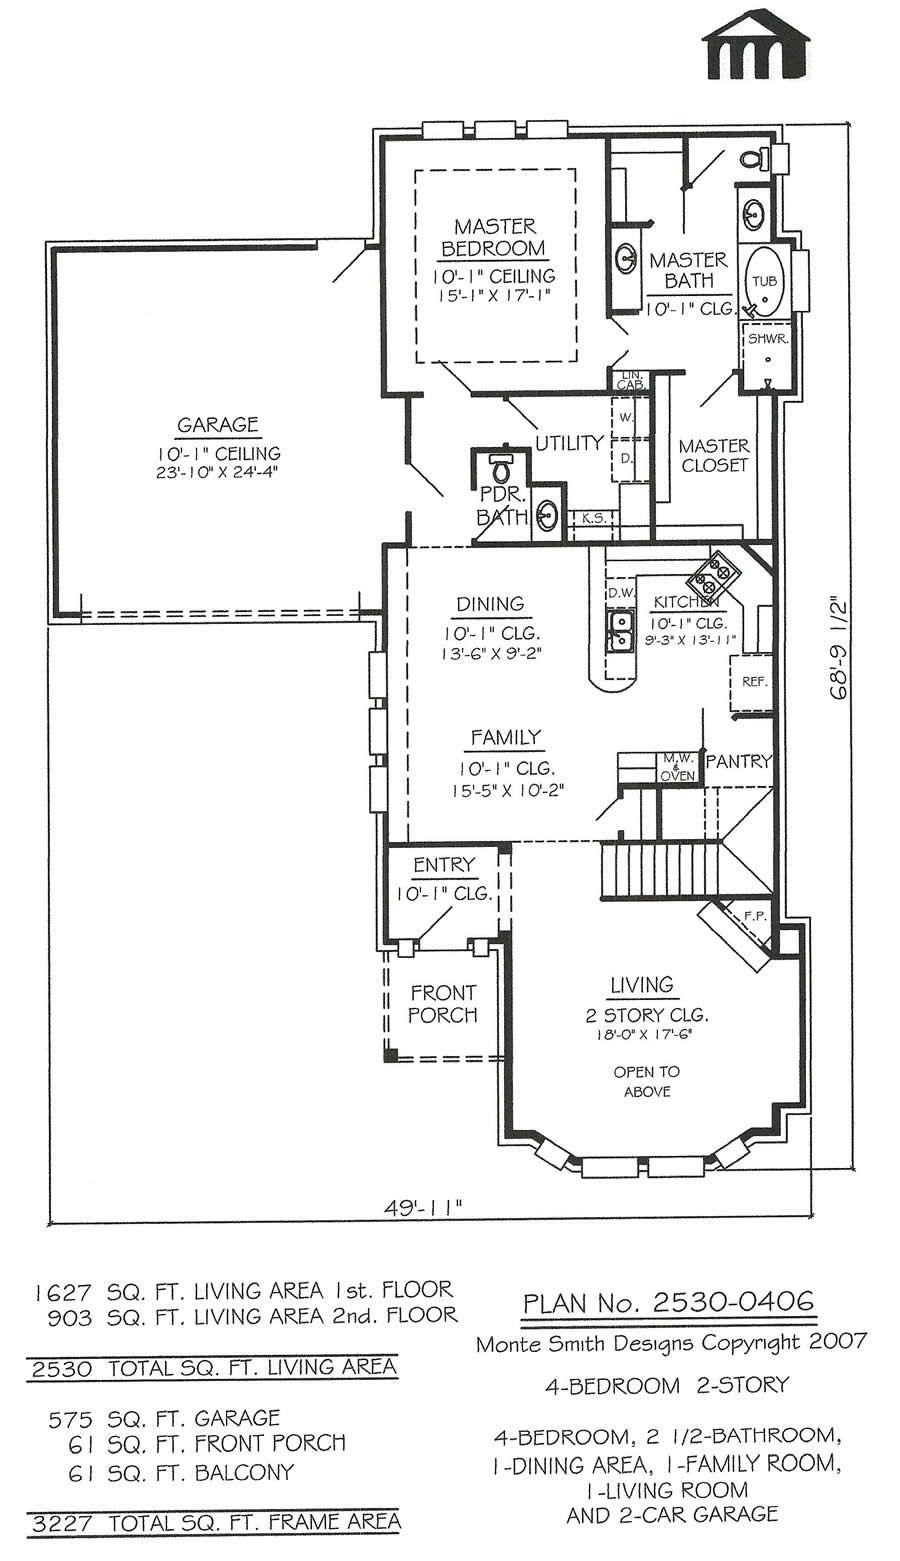 small resolution of 2 story 4 bedroom 2 1 2 bathroom 1 dining room 1 family room 1 living room and 2 car garage 2530 sq living area house plan offices in texas and